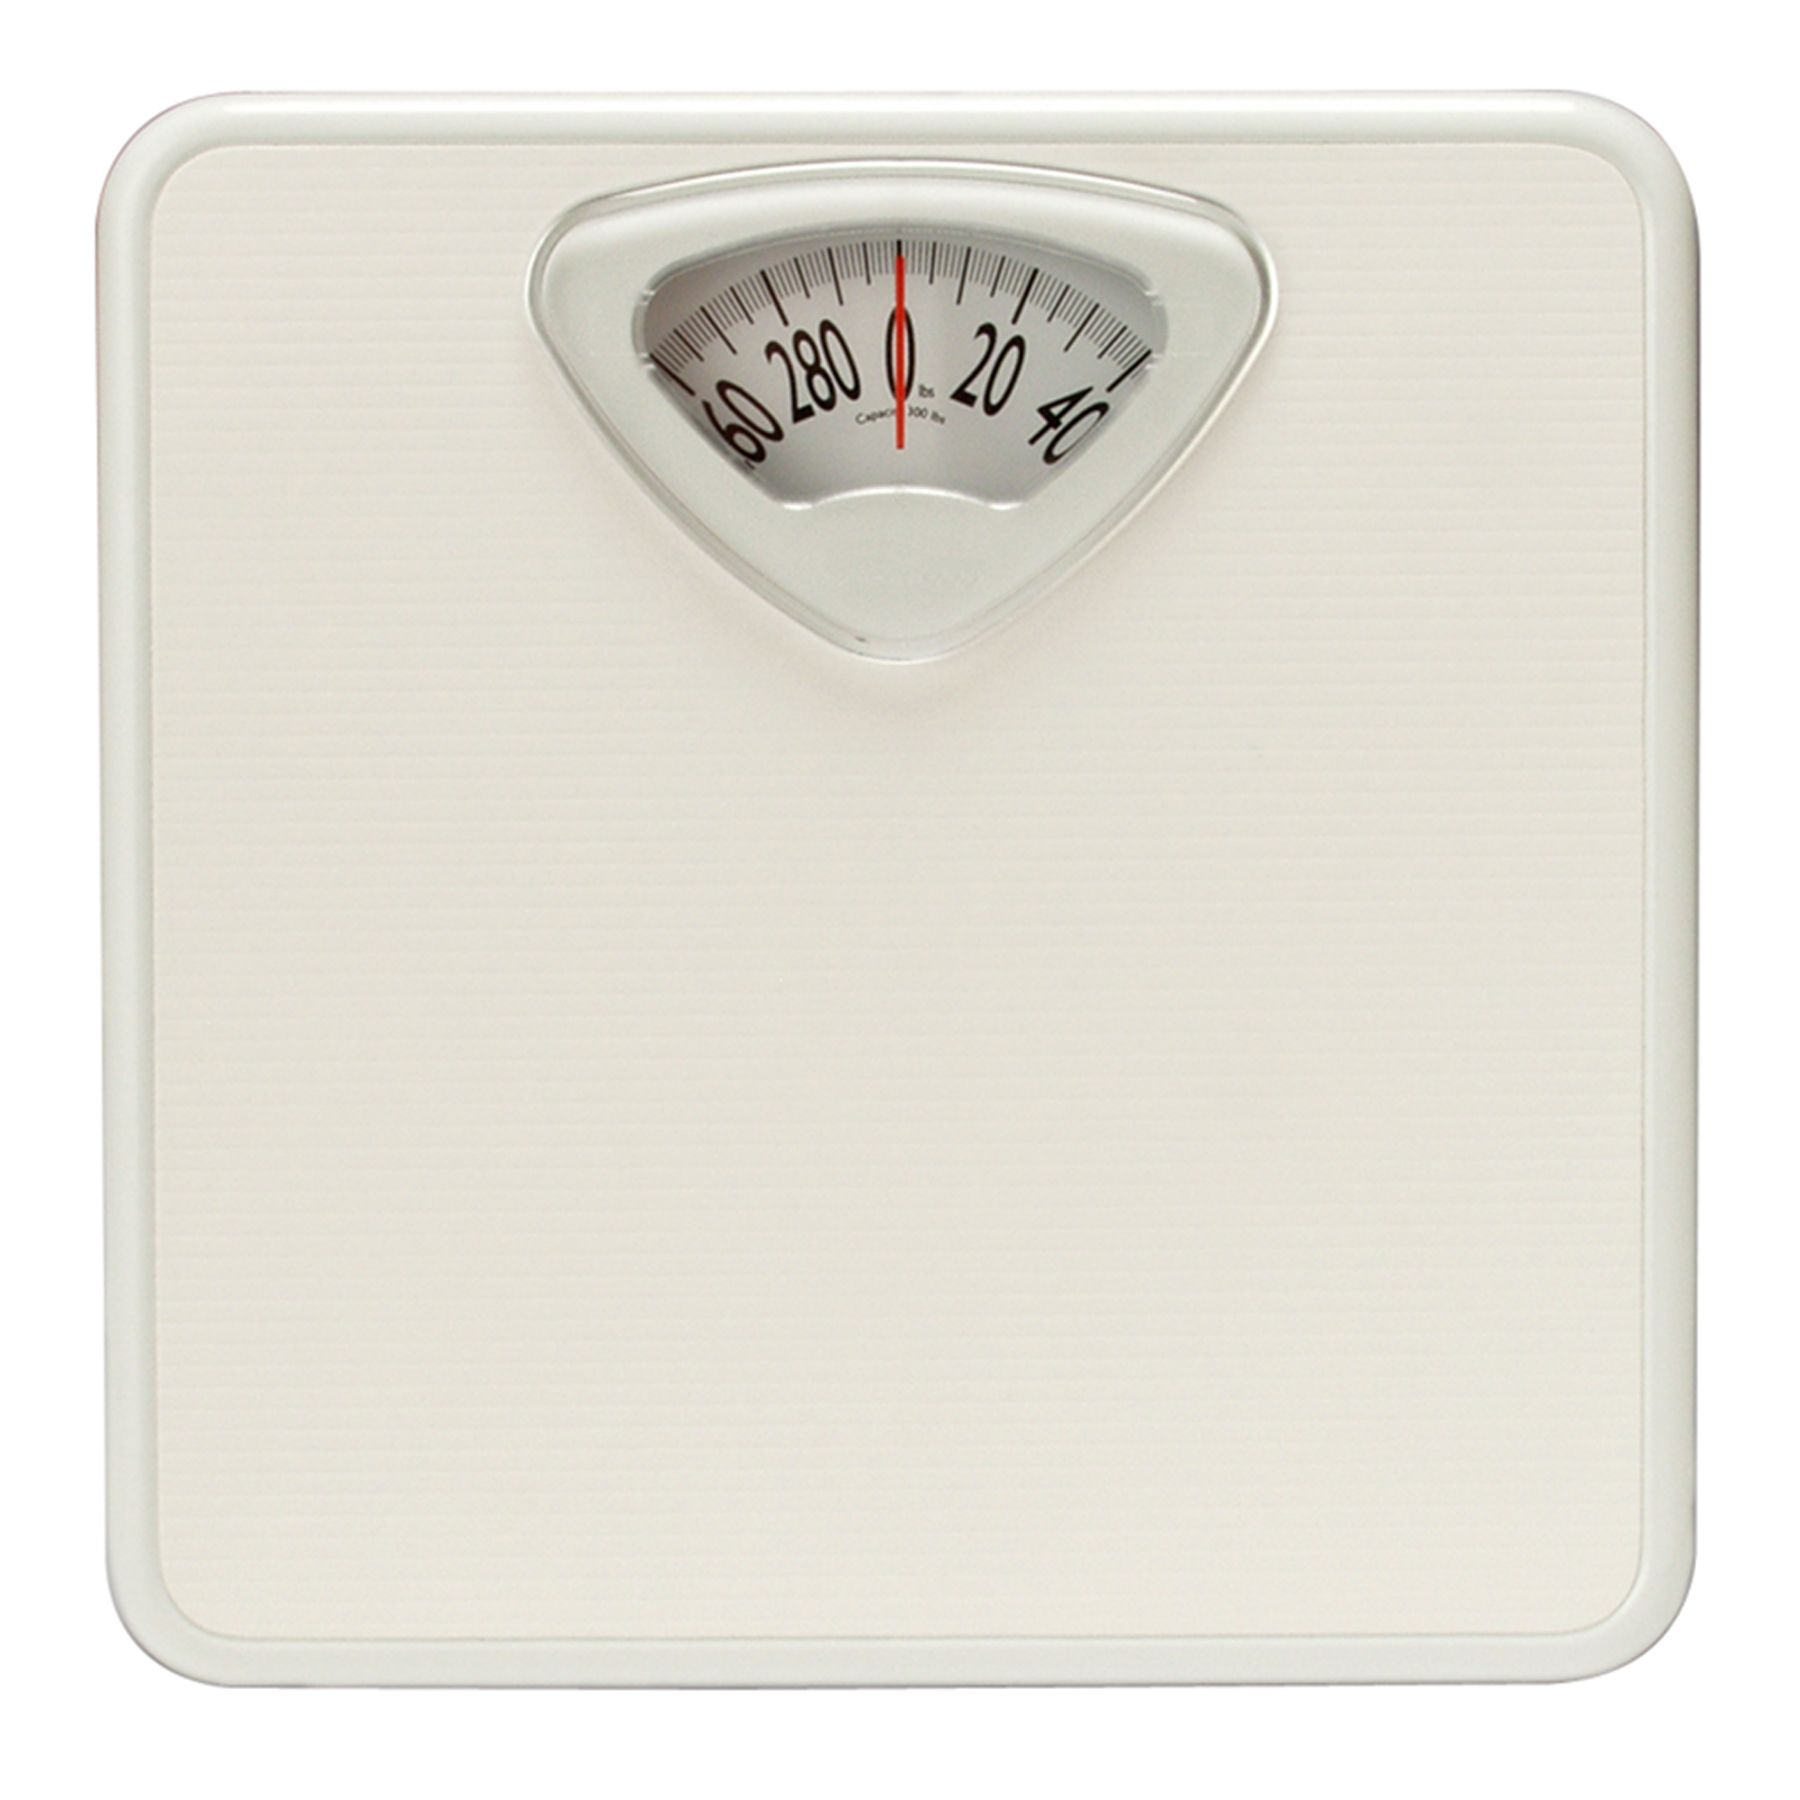 Taylor Scales Analog Bath Scale  White  Shop Your Way